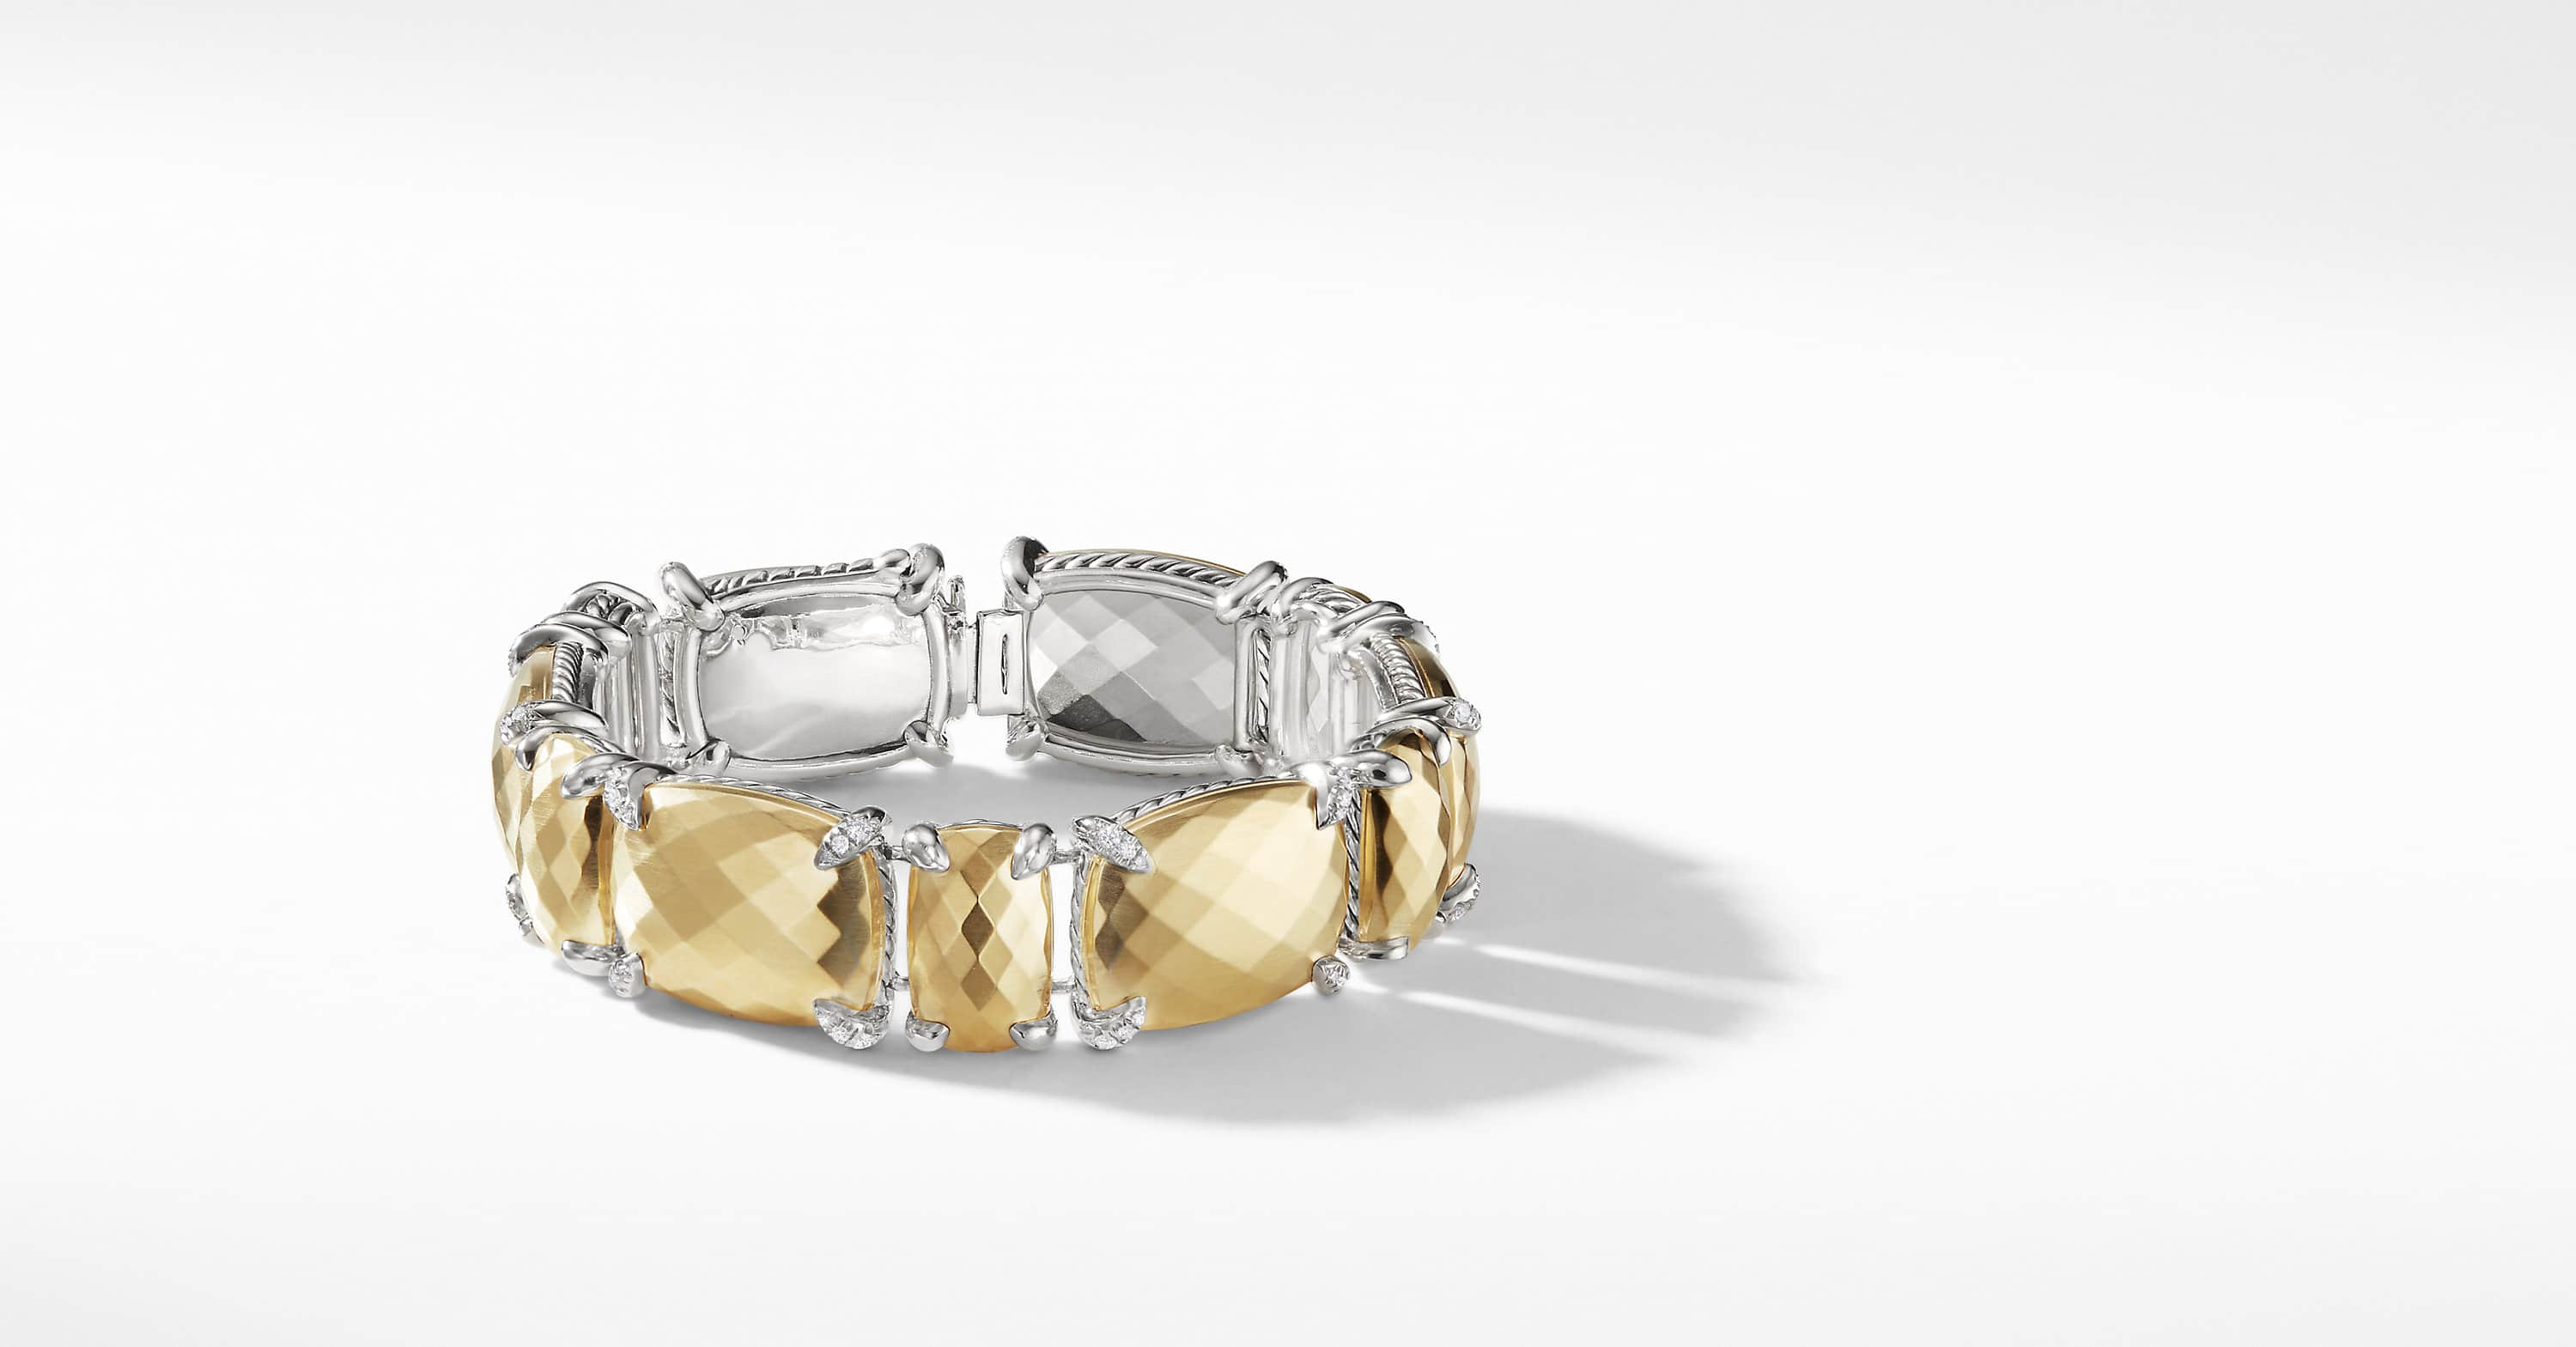 Chatelaine Linear Bracelet with Diamonds and 18K Gold